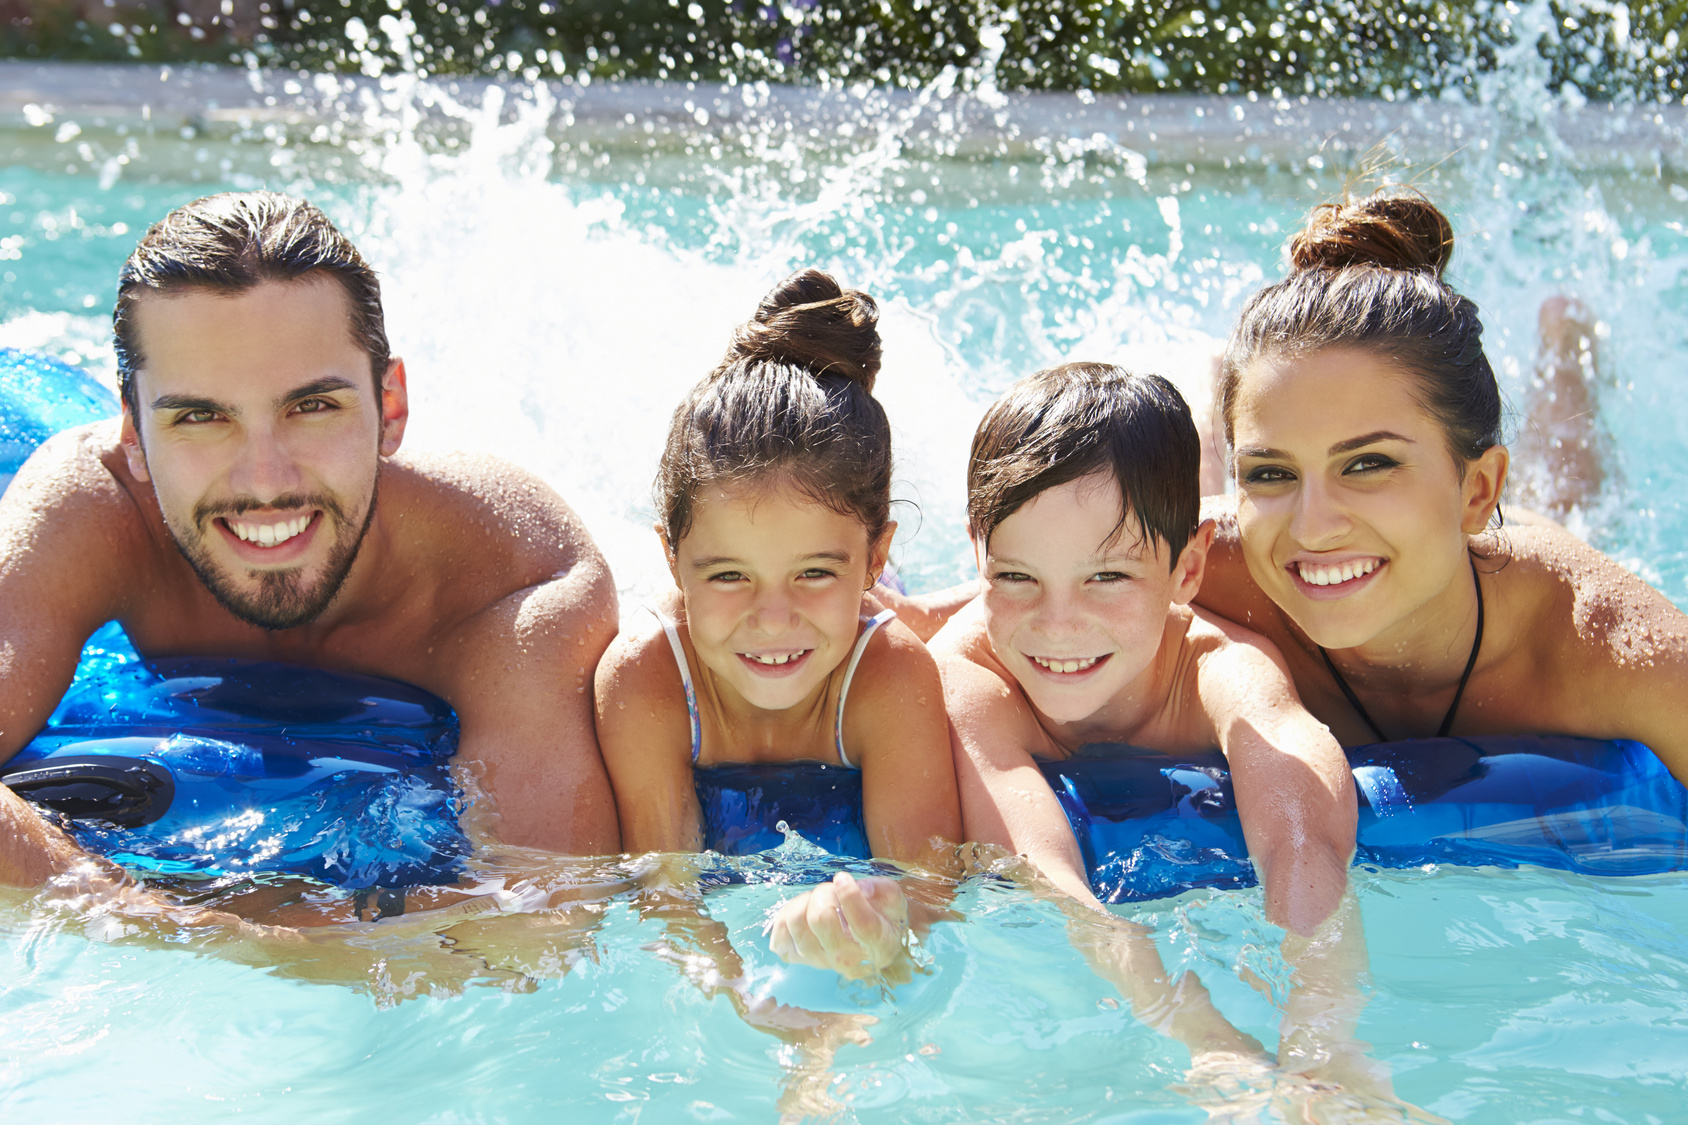 5 Things You Should Never Do In Your Pool